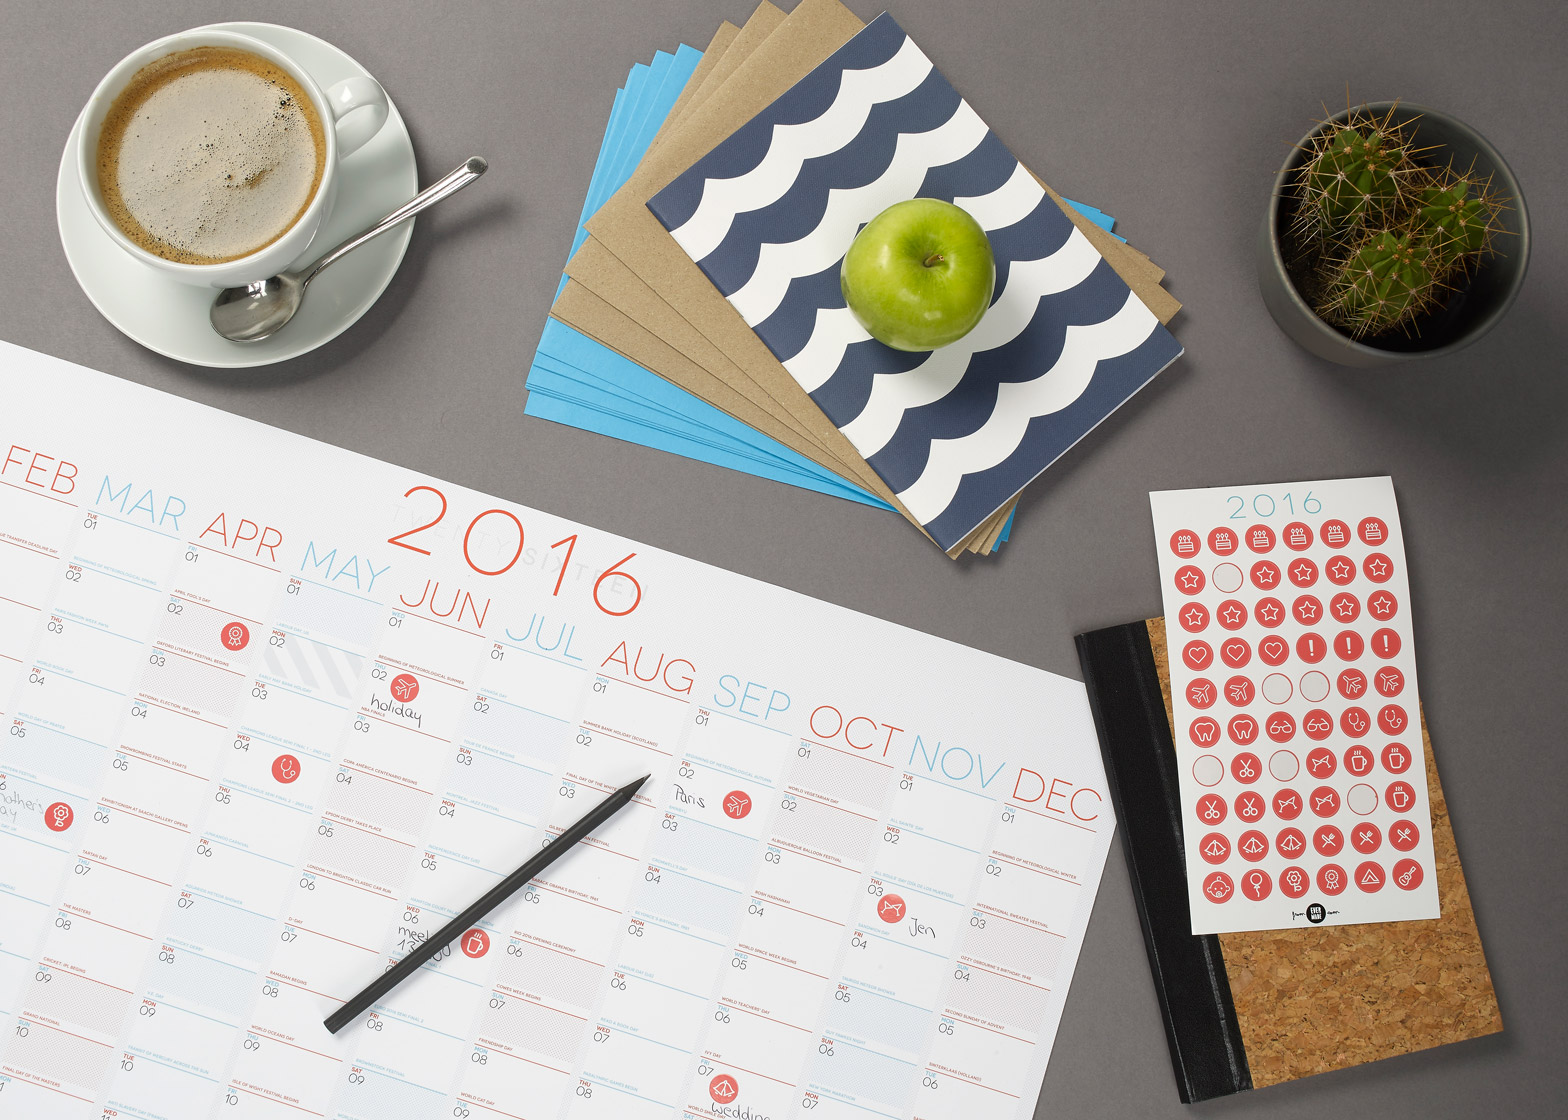 2016 wall planner by Evermade